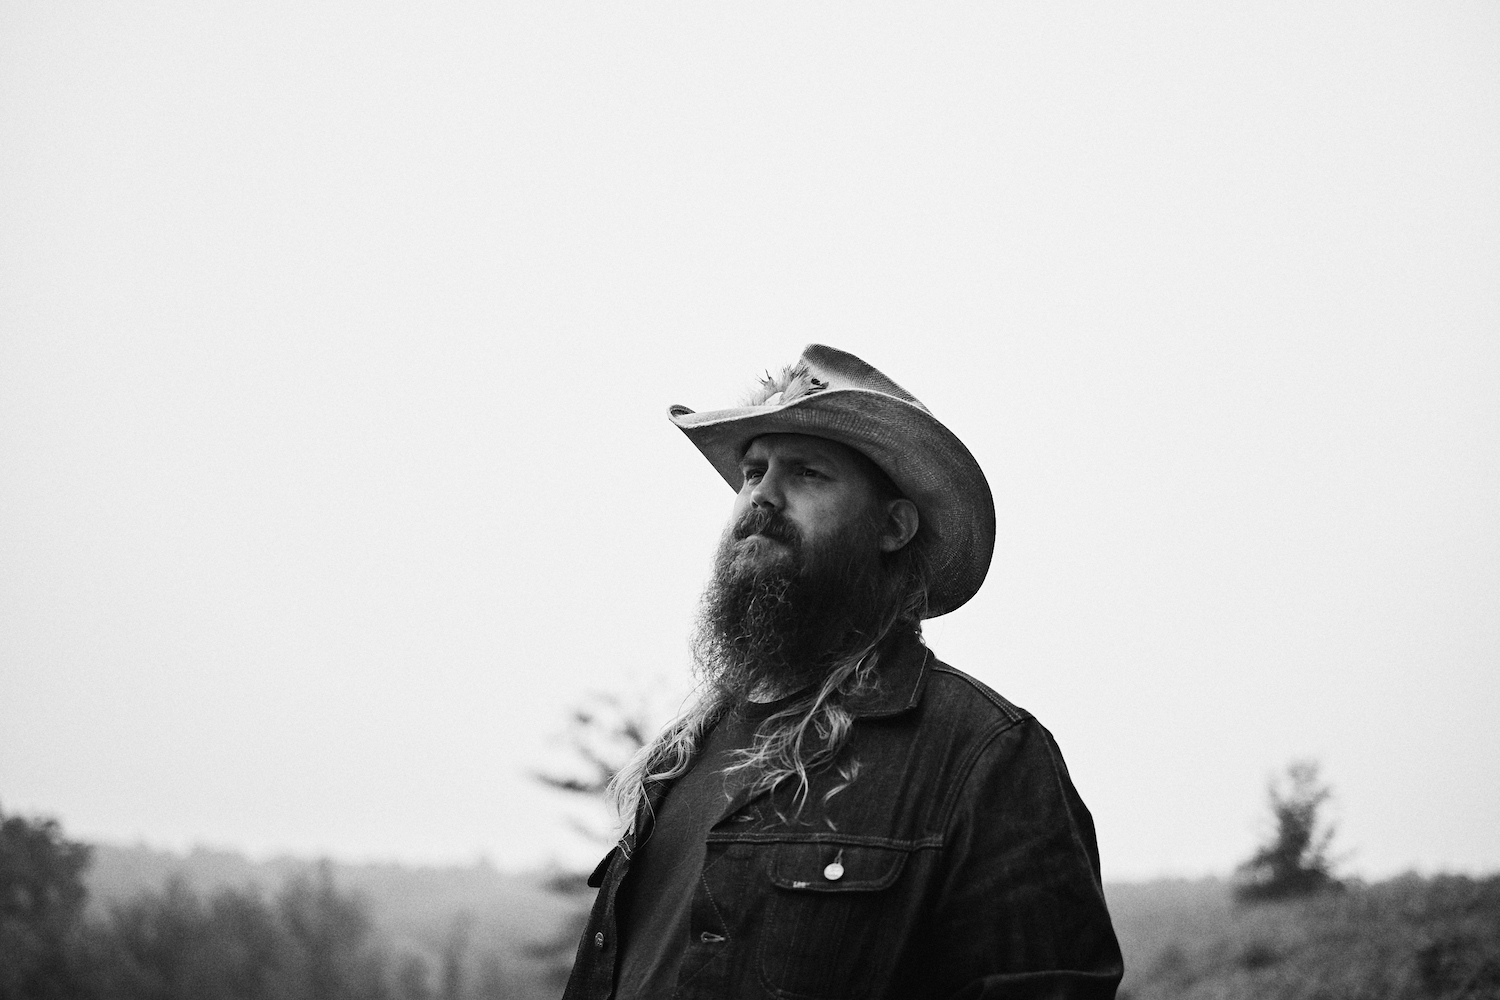 Chris Stapleton Covers an Extremely Obscure John Fogerty Song on New Album